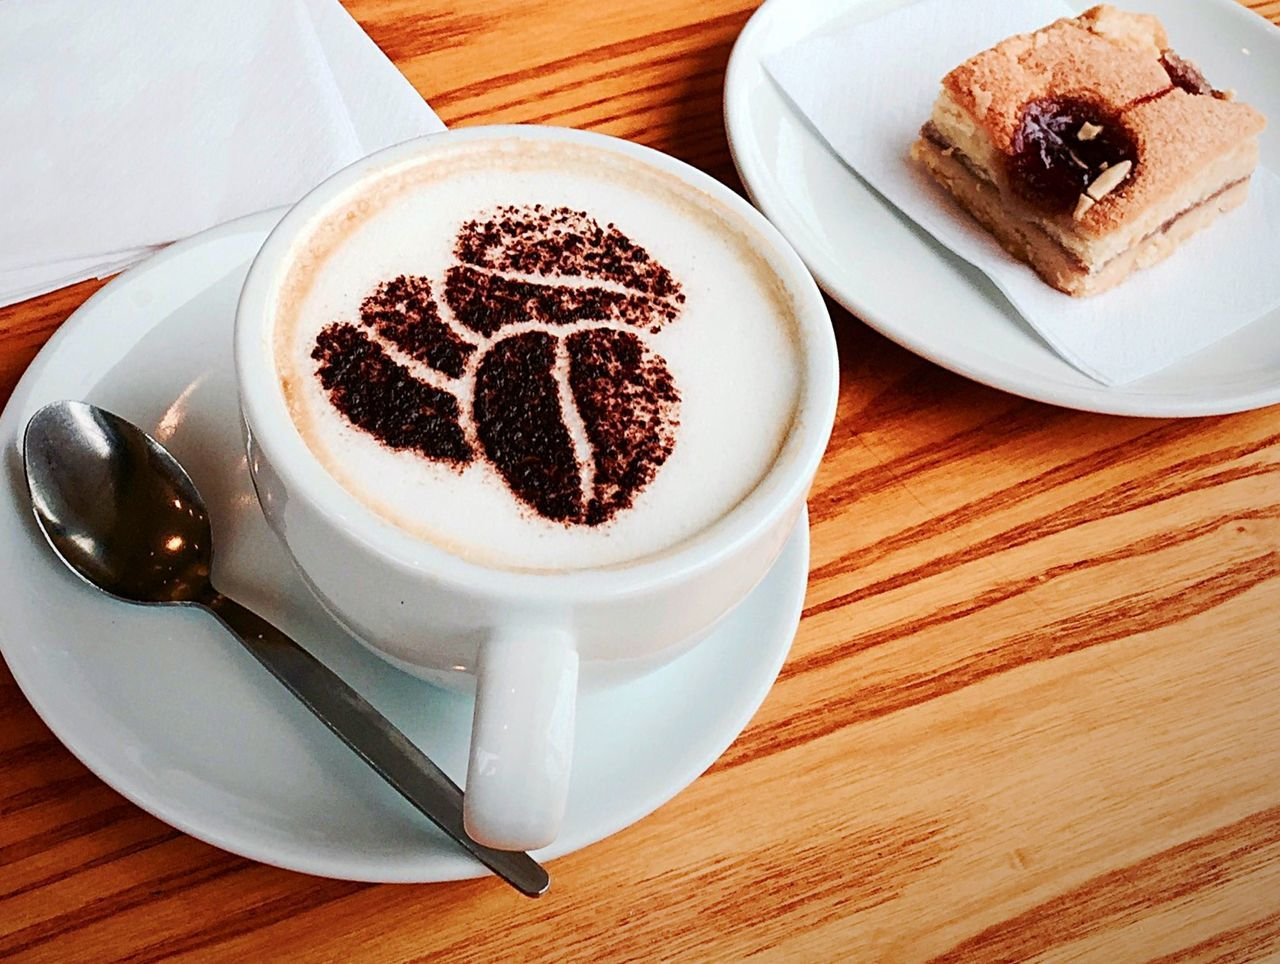 coffee cup, coffee - drink, food and drink, table, saucer, drink, dessert, plate, sweet food, high angle view, freshness, food, cappuccino, frothy drink, indulgence, refreshment, indoors, brown, no people, unhealthy eating, froth art, temptation, latte, close-up, day, ready-to-eat